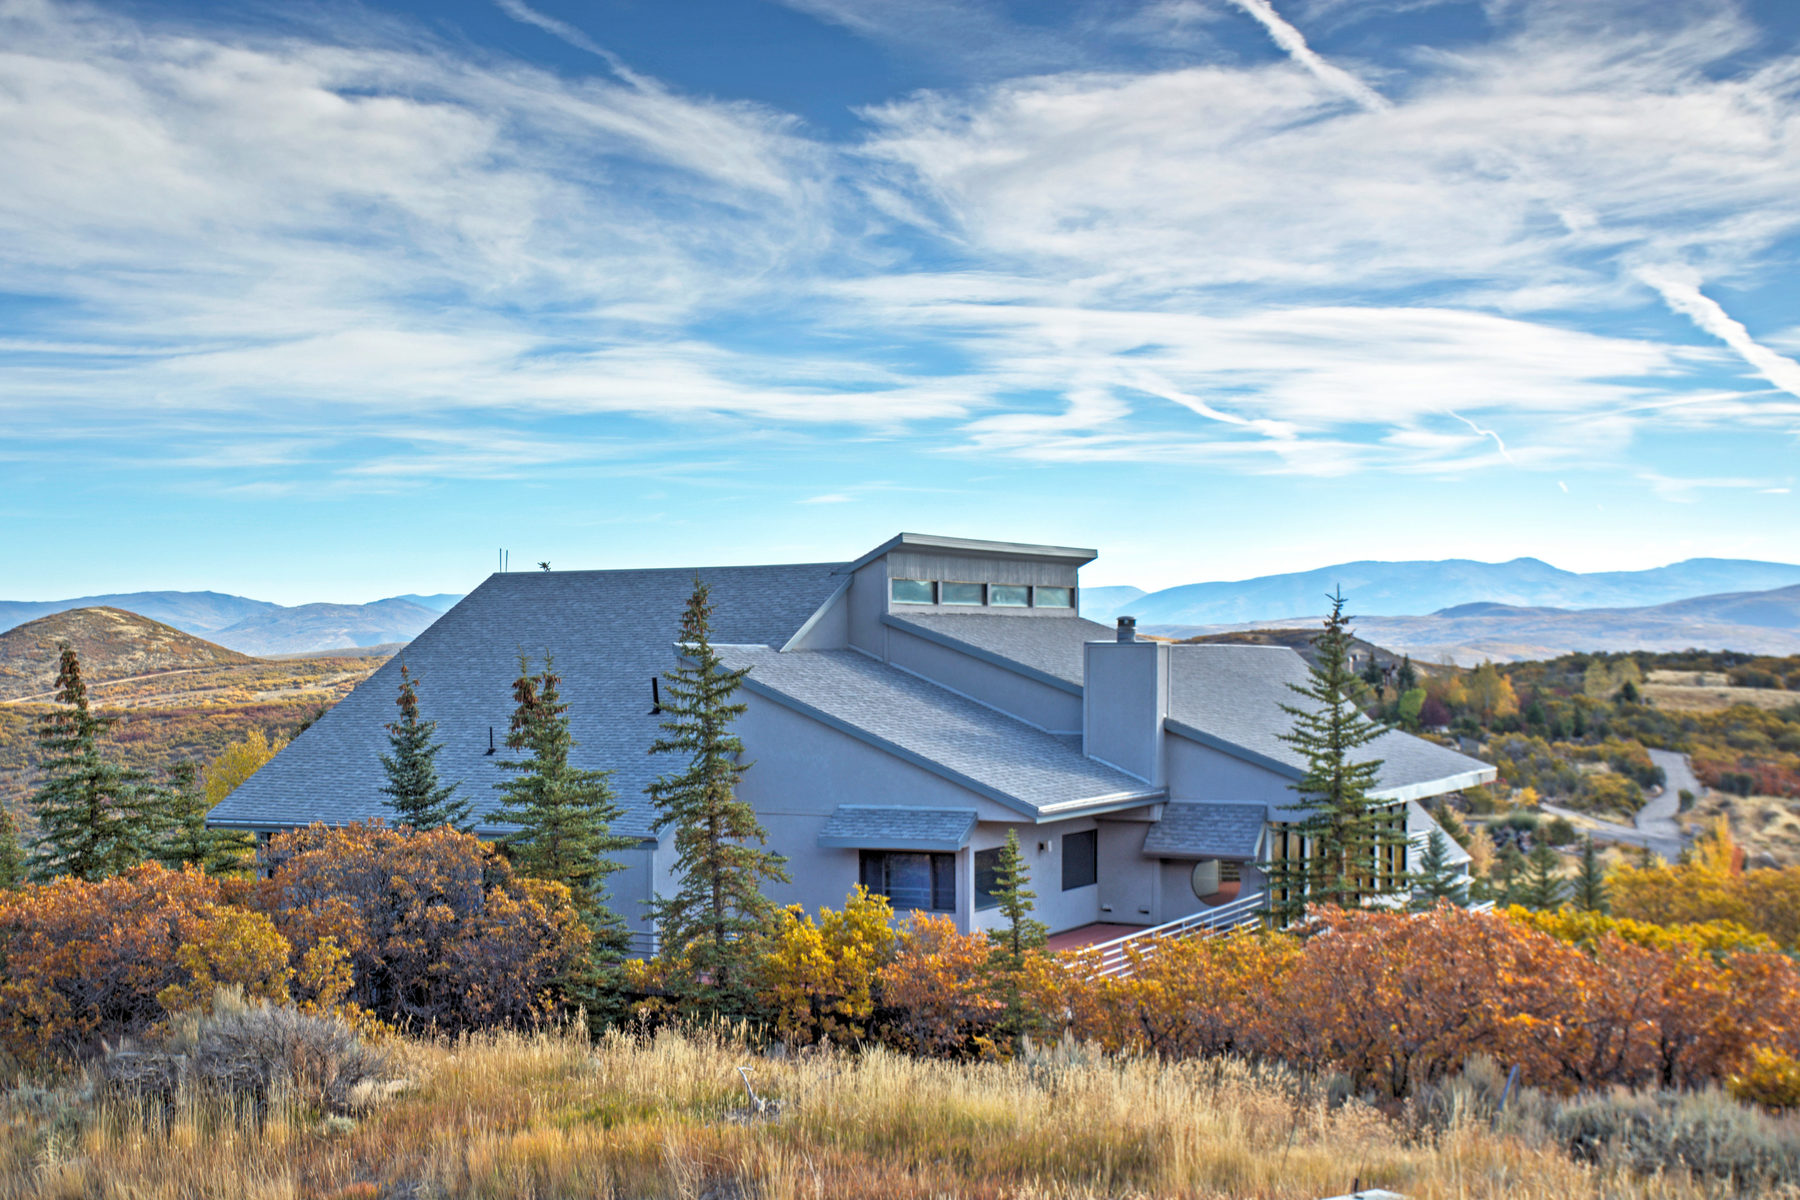 단독 가정 주택 용 매매 에 This Mountaintop Gem is the Perfect Personal or Corporate Retreat 325 Mountain Top Dr Park City, 유타, 84060 미국